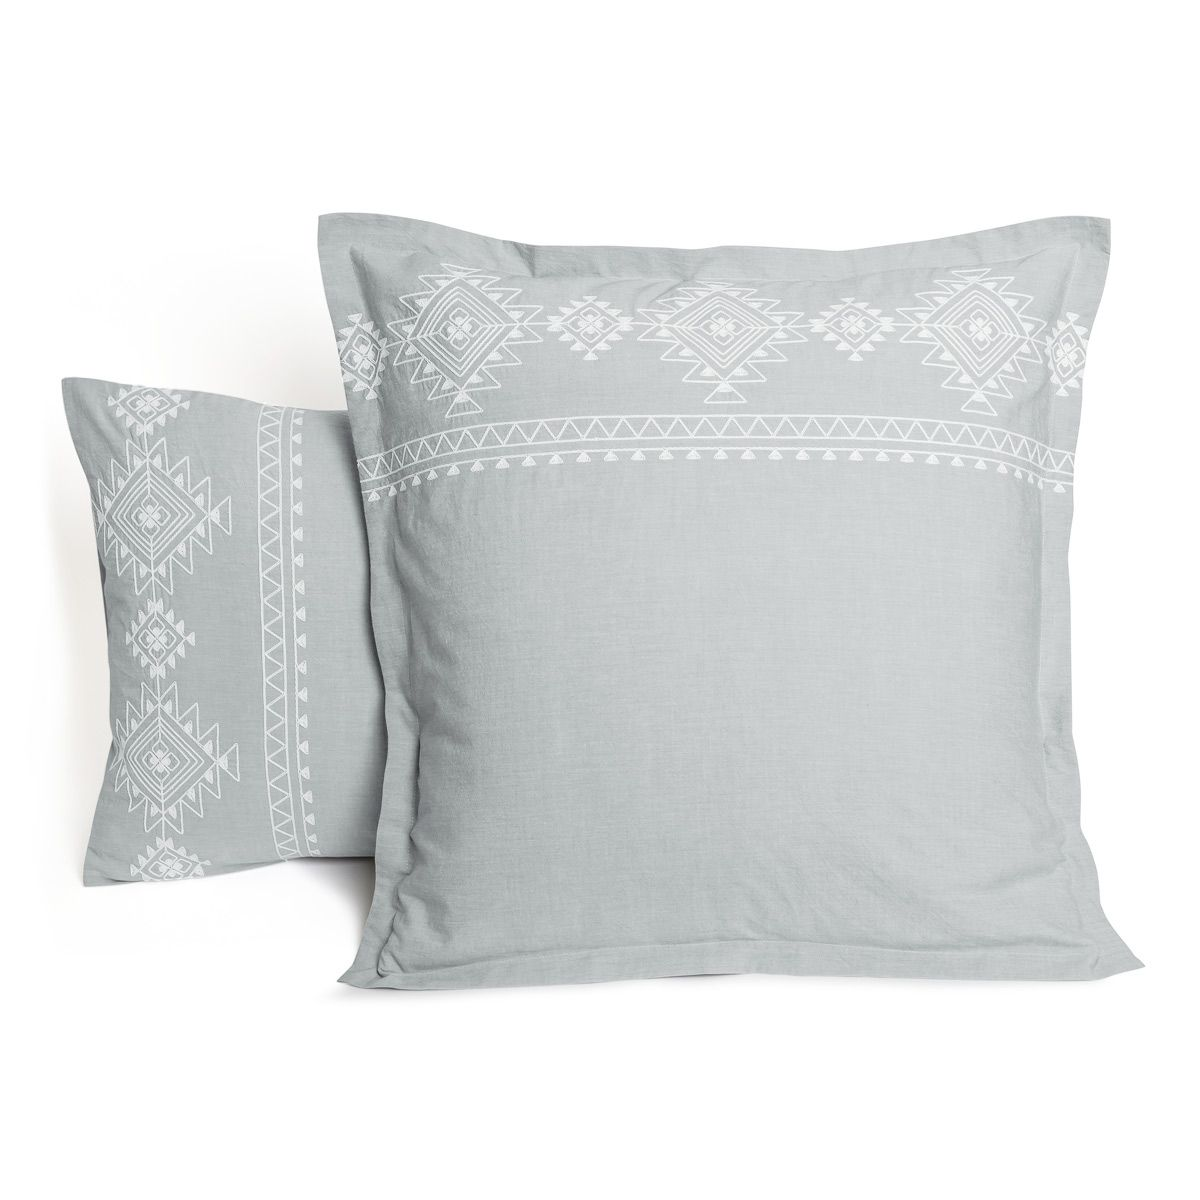 Pillowcase Azteca | Bed linen | Tradition des Vosges